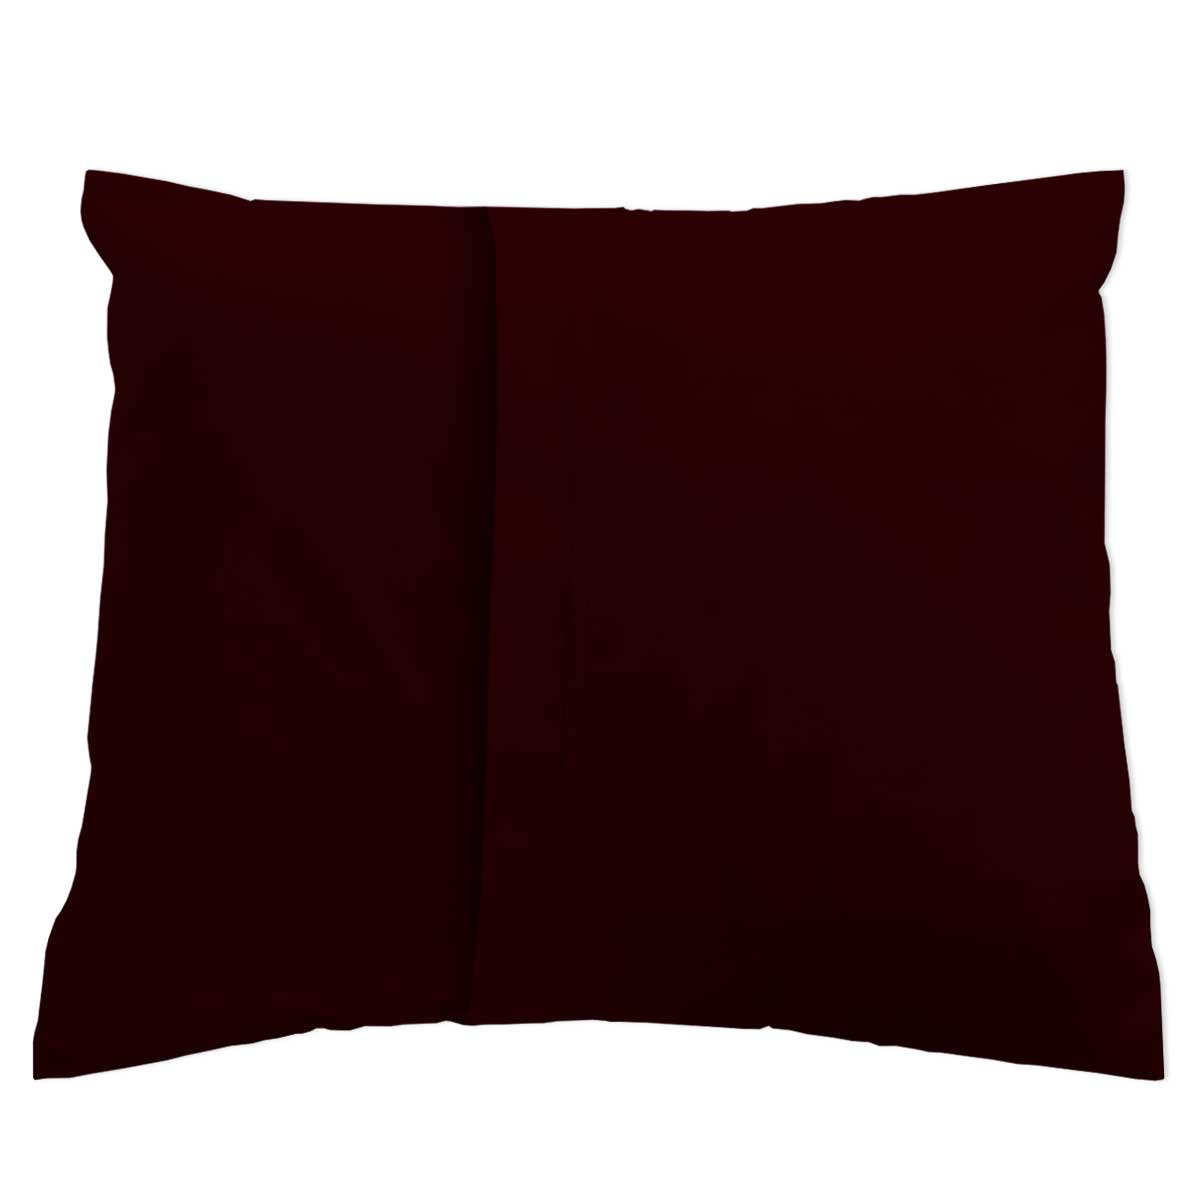 Baby Pillow Case Solid Brown Jersey Knit Baby Pillow